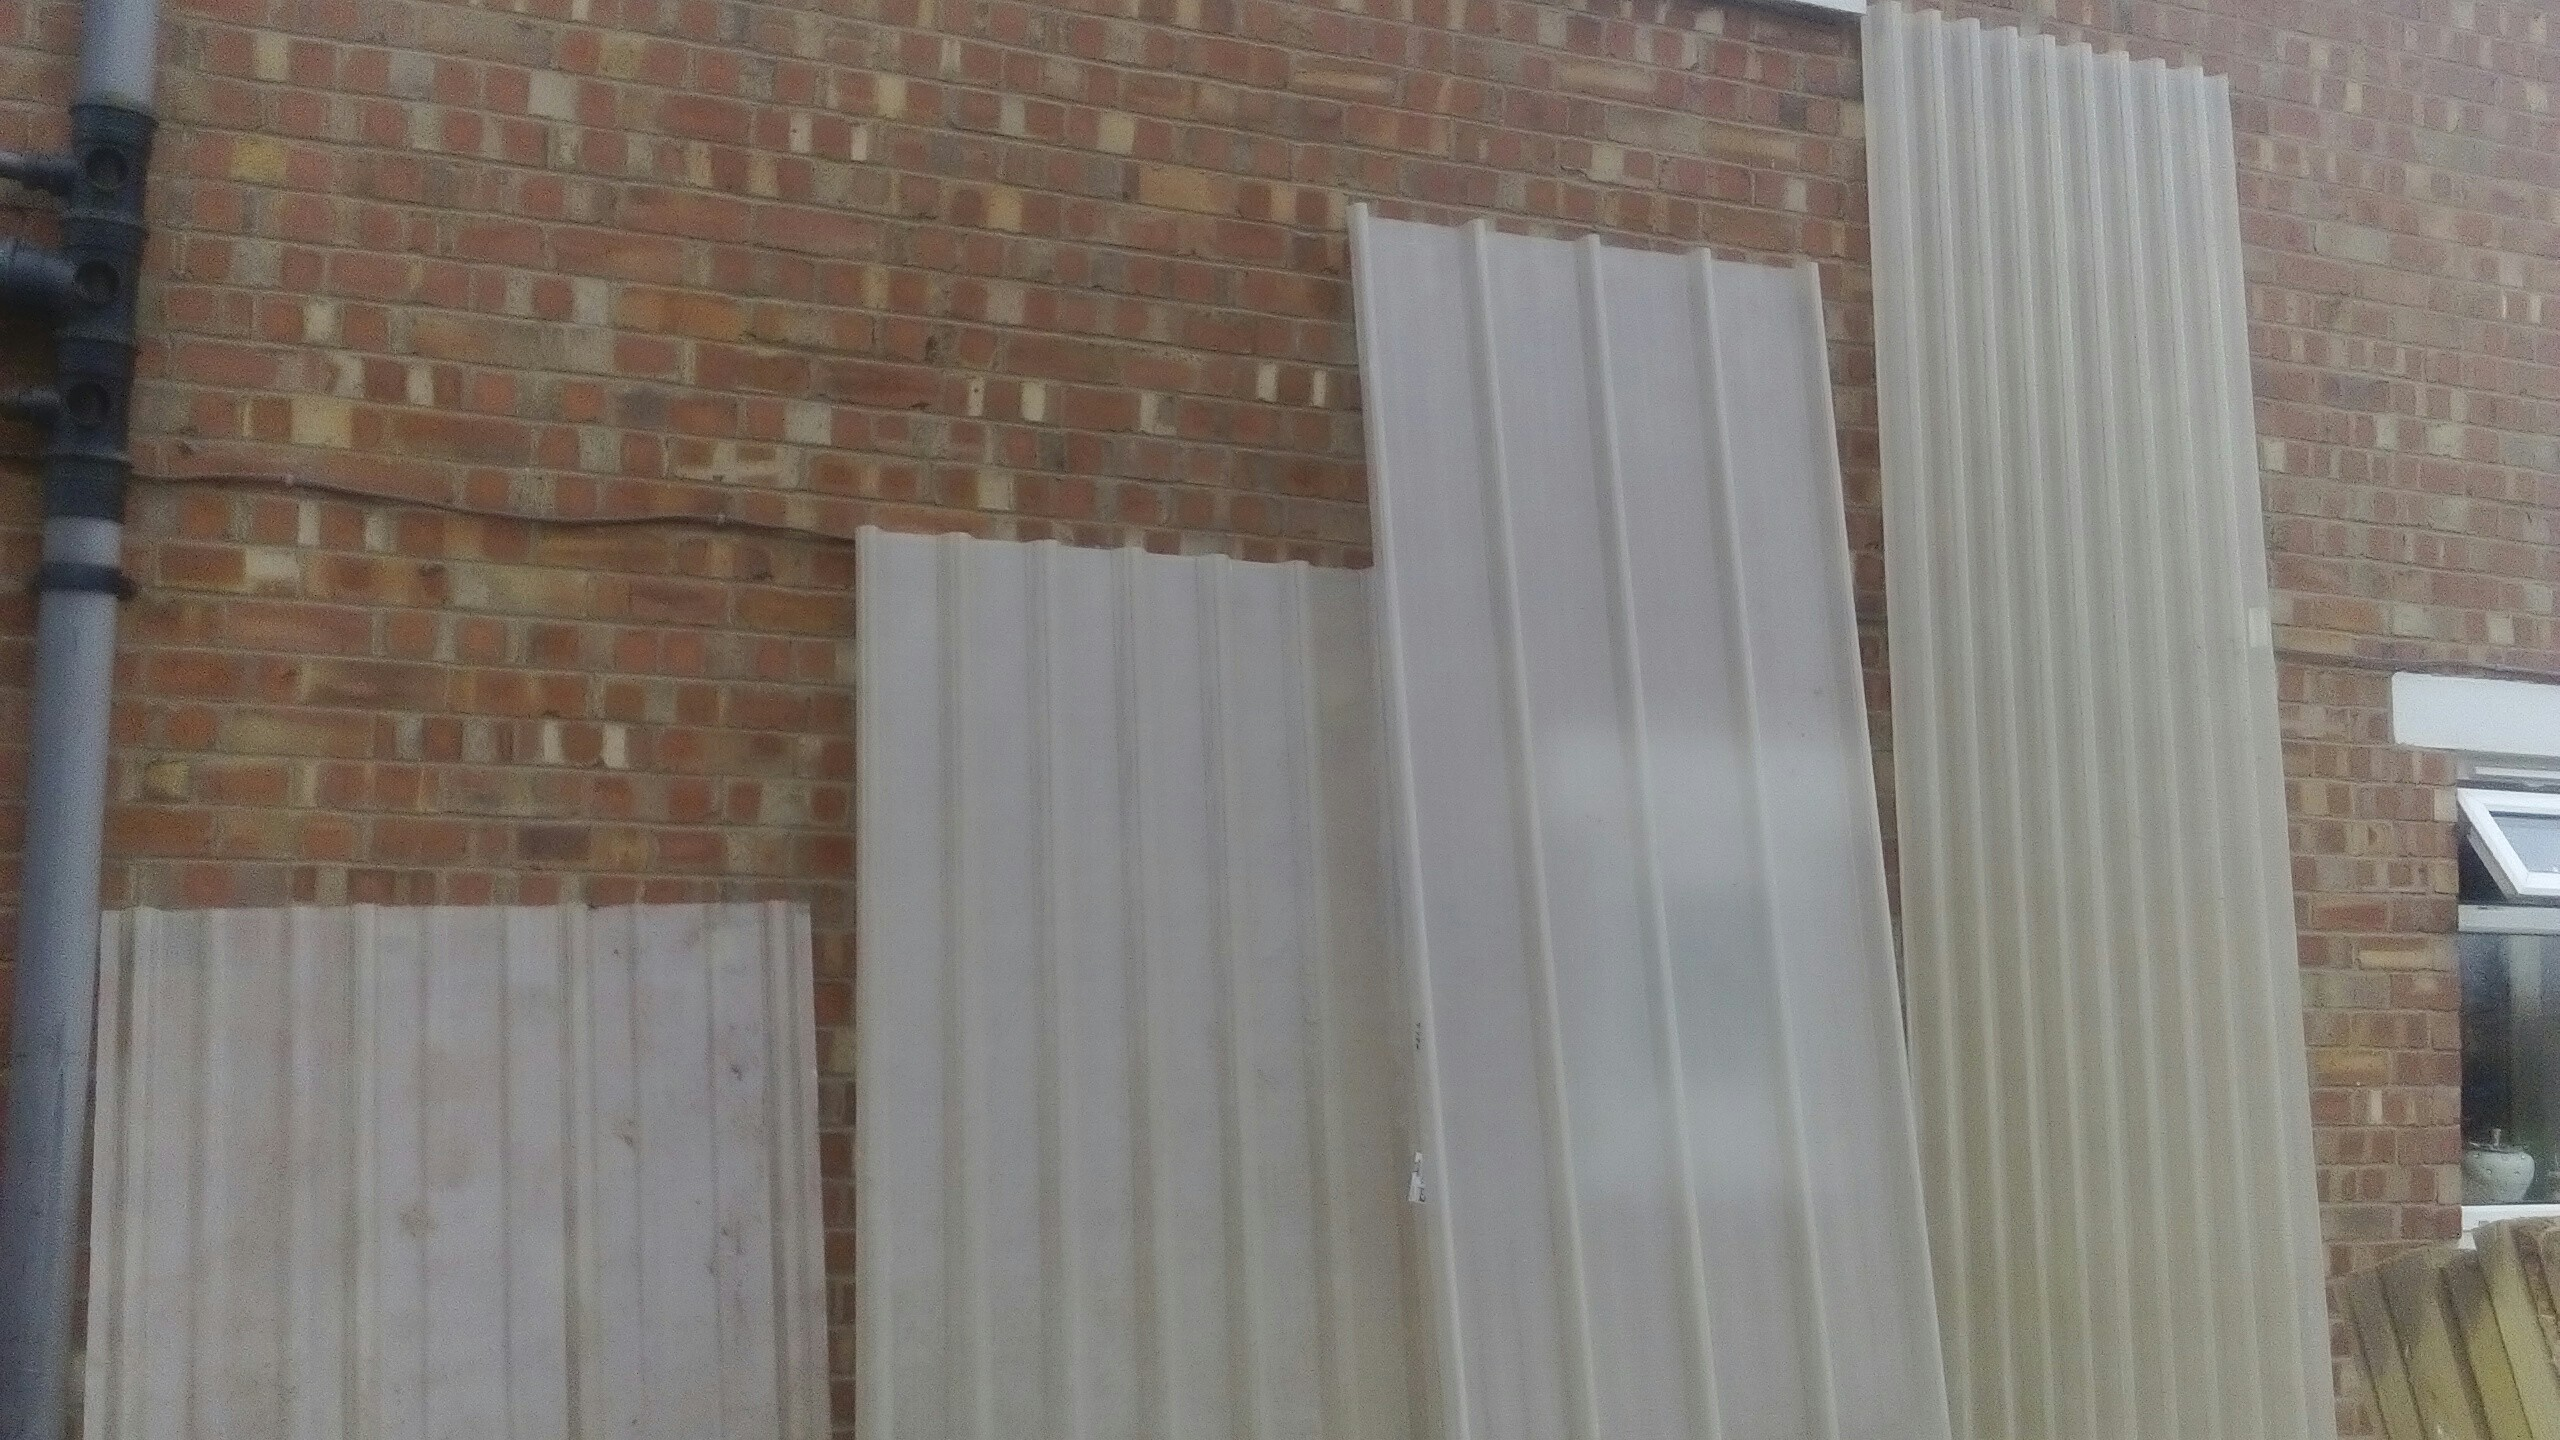 Corrugated Roof For Sale In Uk 83 Used Corrugated Roofs